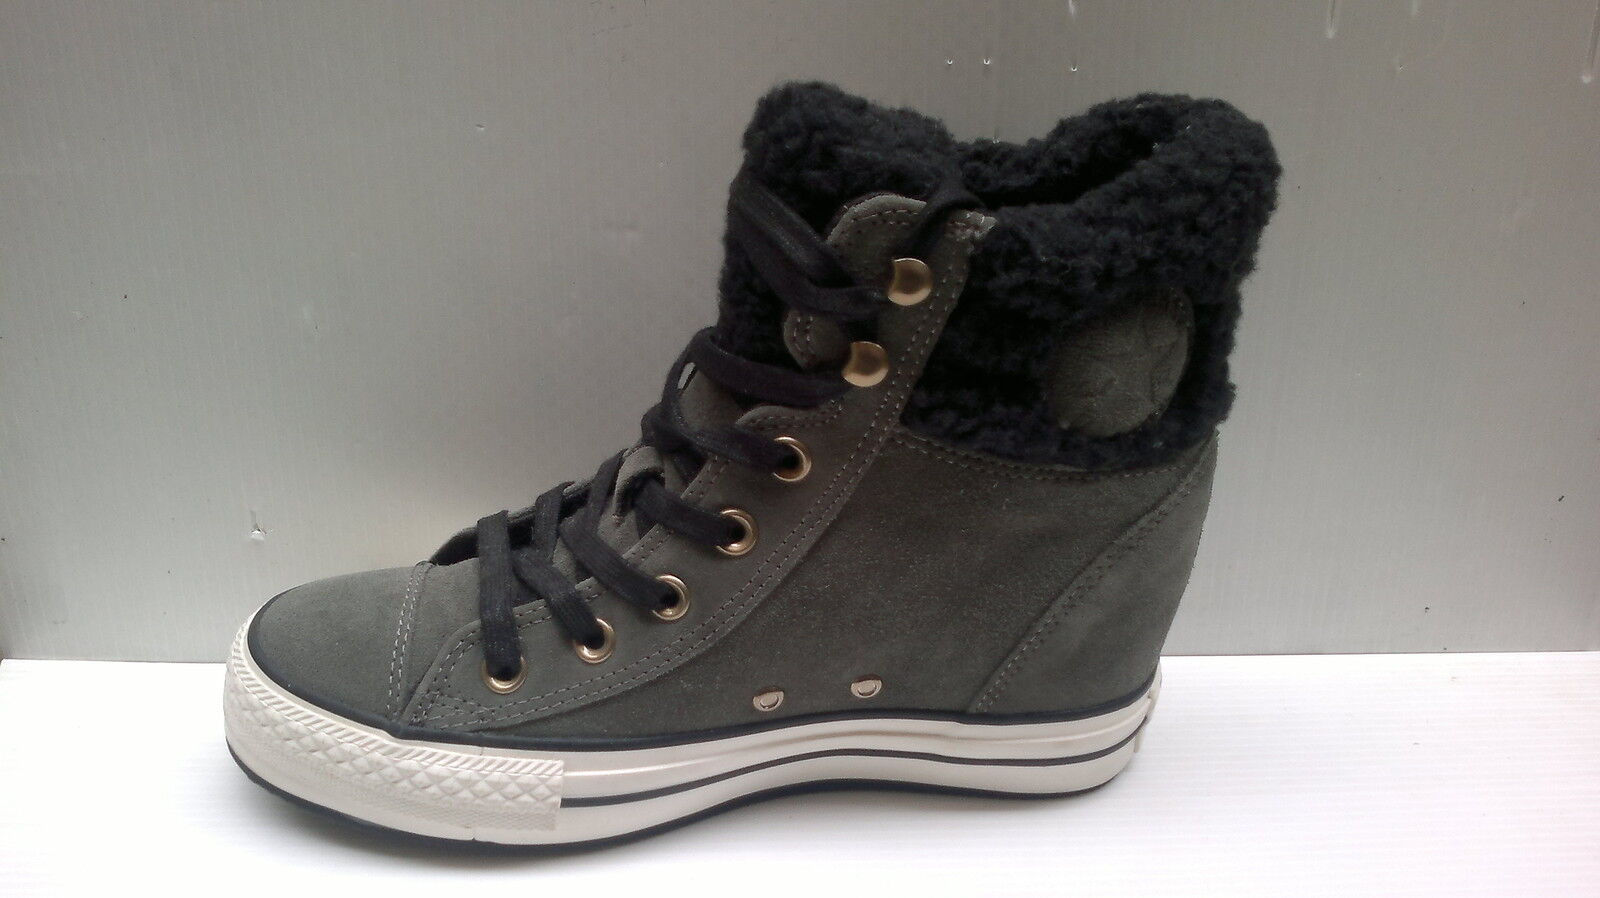 SCARPE CONVERSE ALL STAR HI PLATFORM PLUS COLLAR SUEDE SHEARLING 545051C